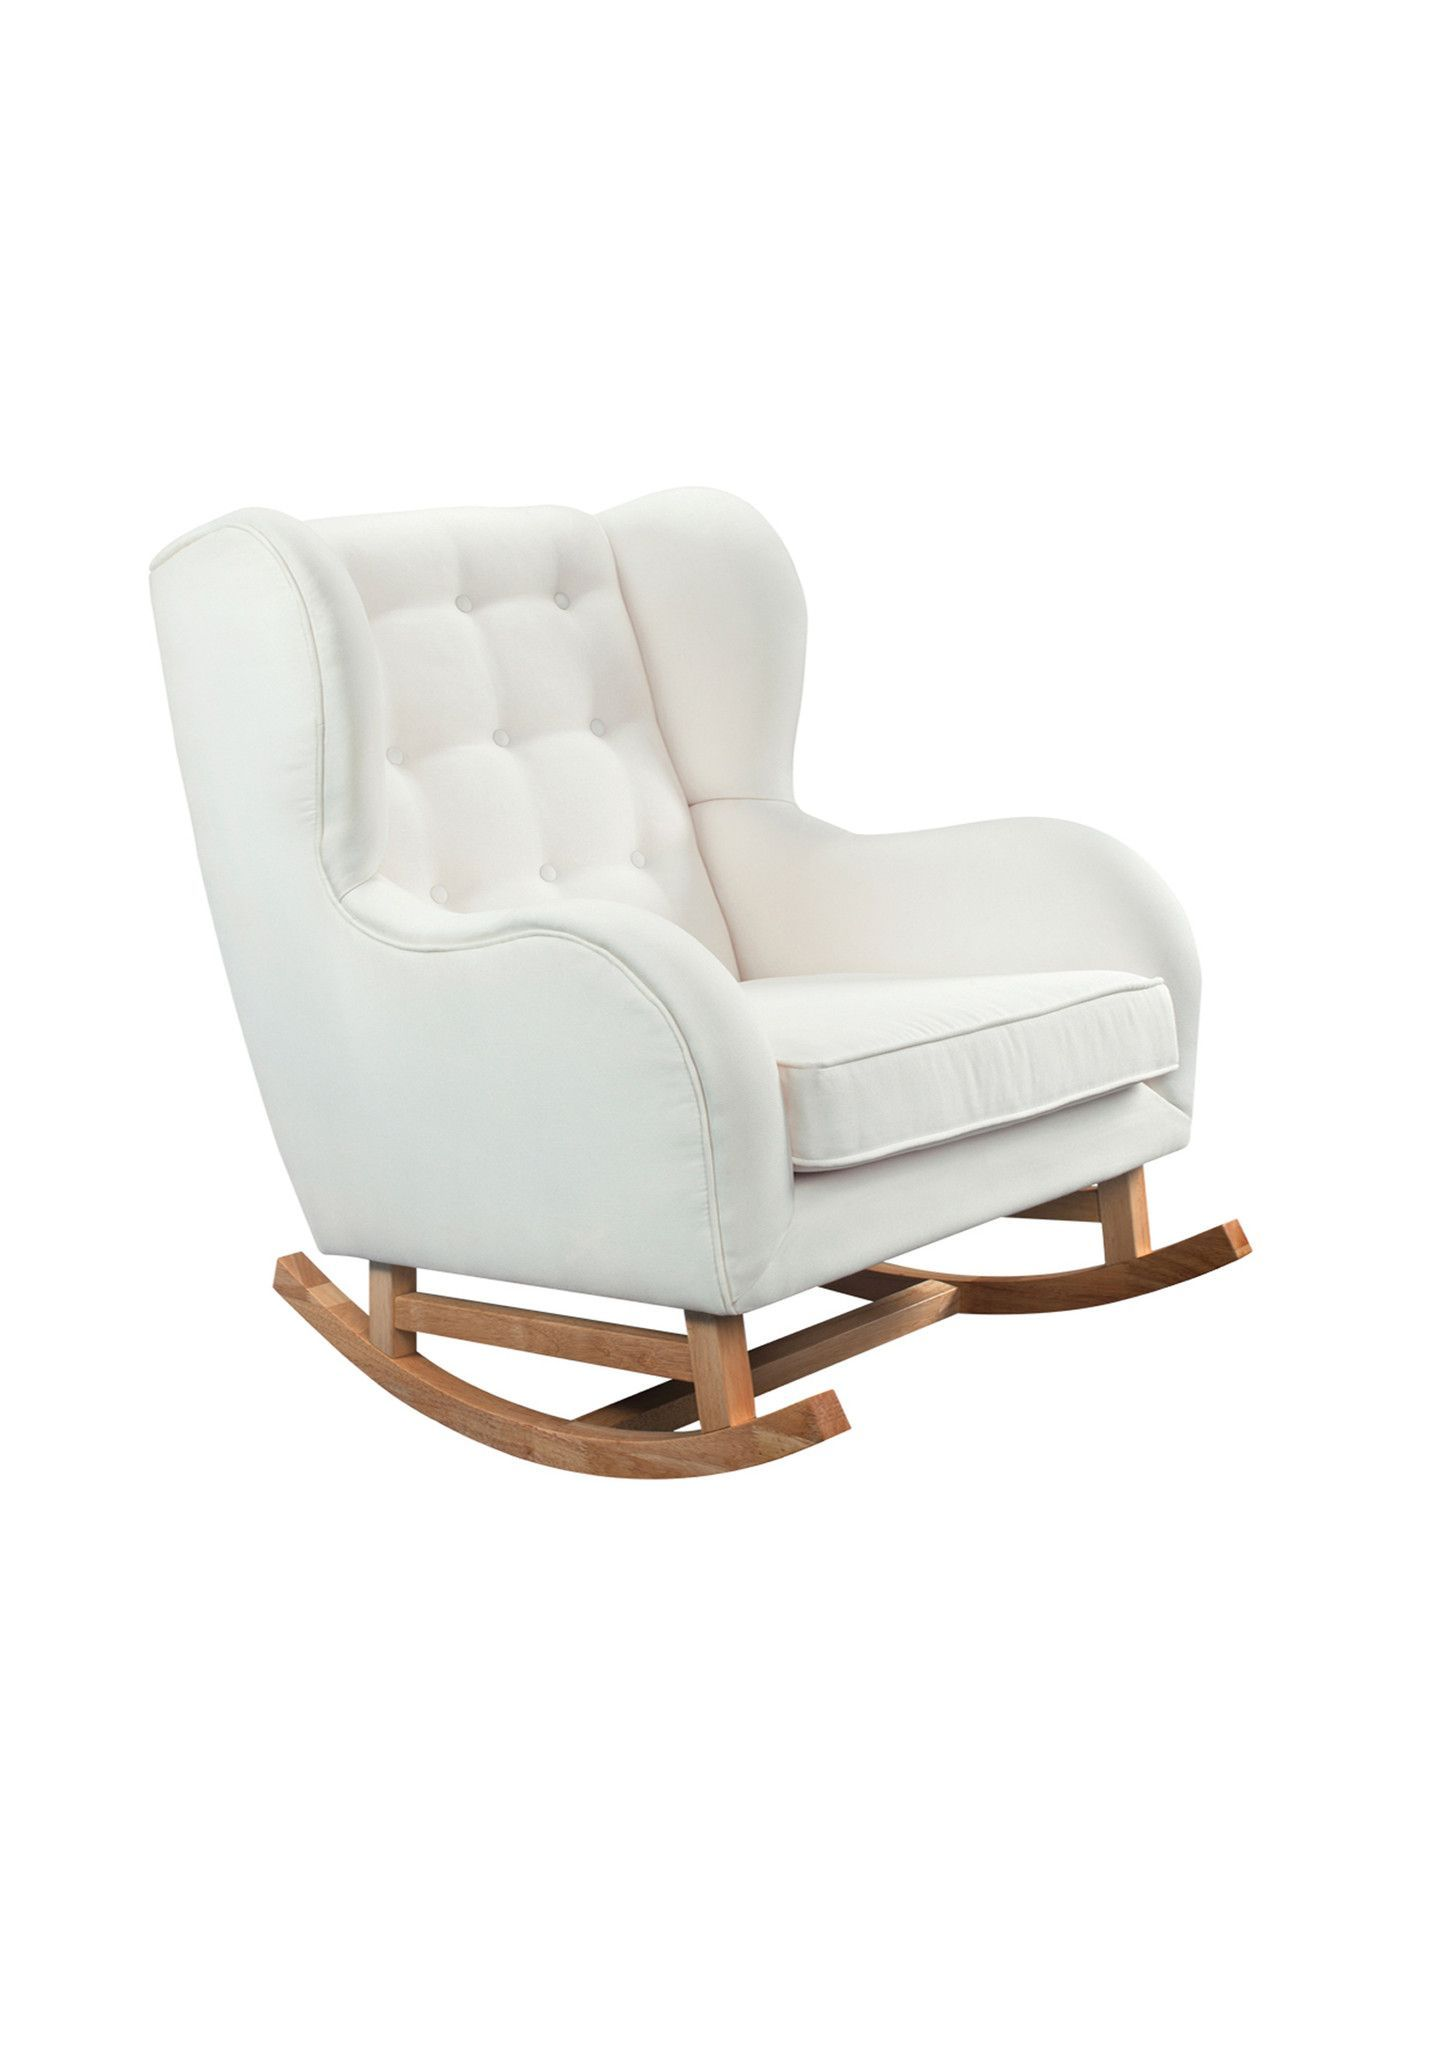 Oslo Rocking Chair